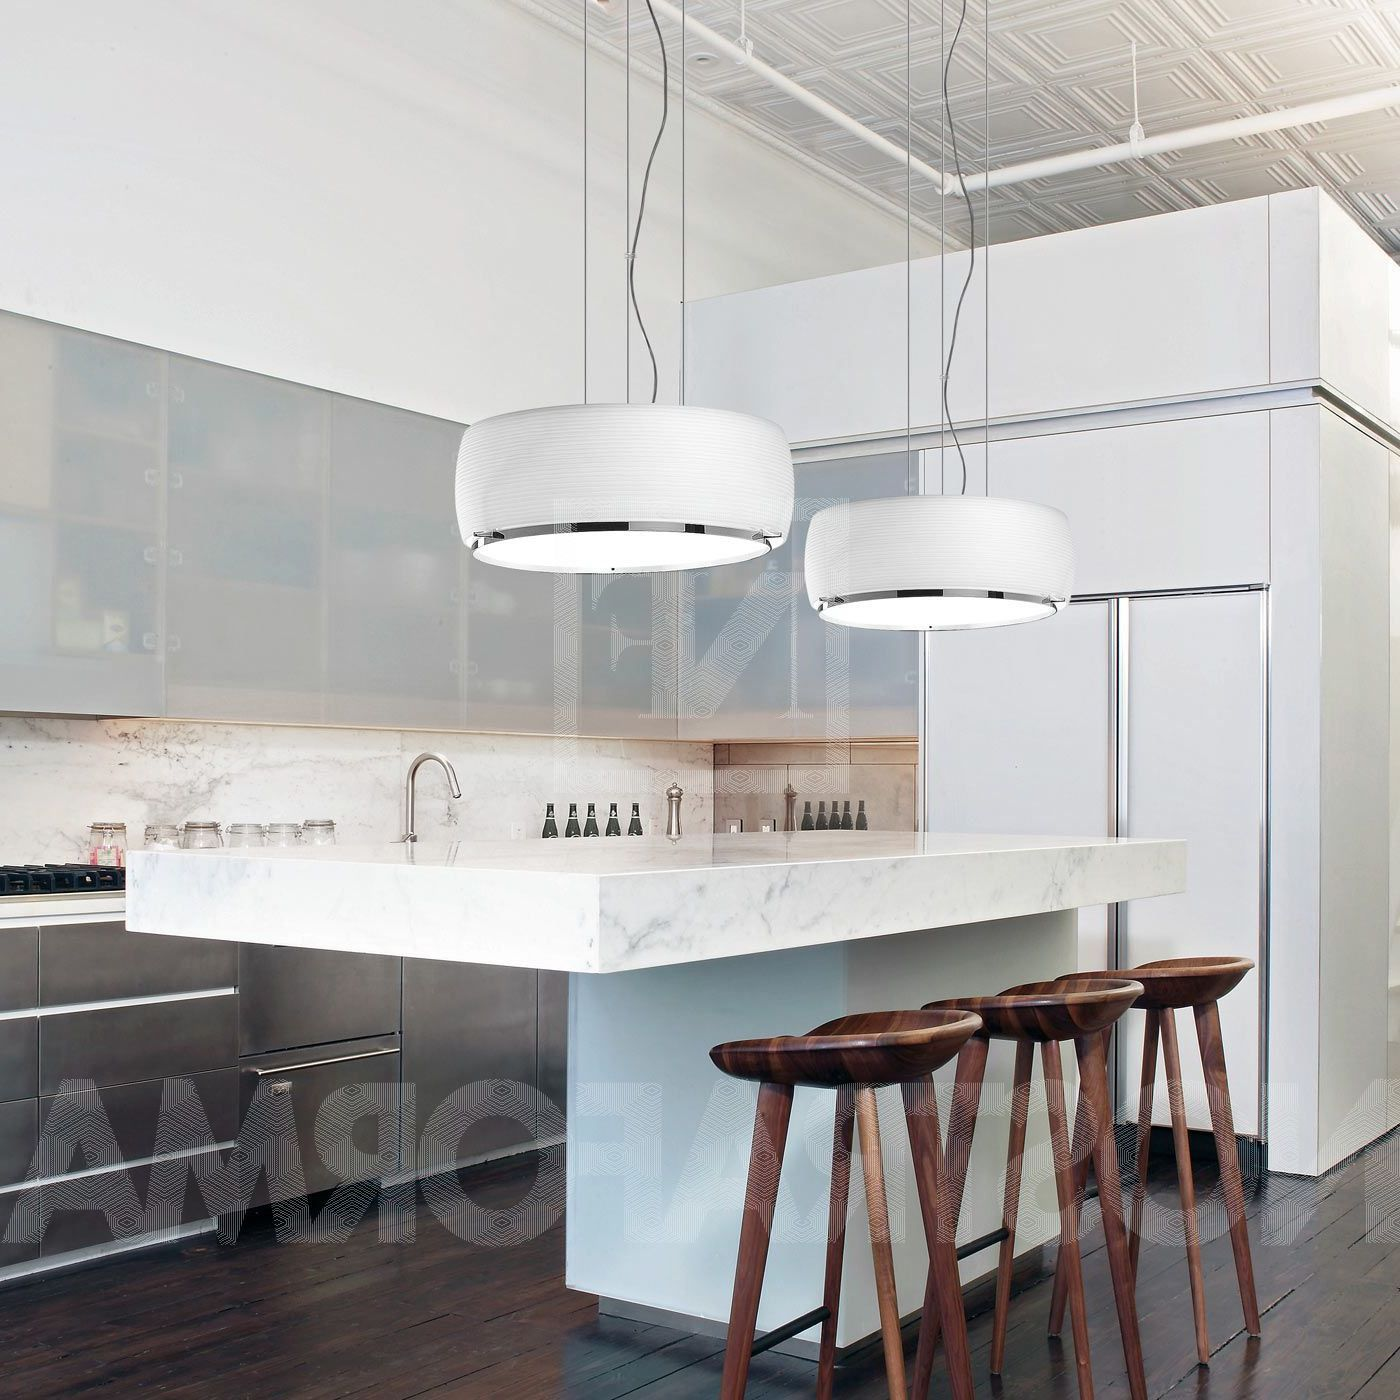 kitchen overhead lighting fixtures. modern kitchen ceiling lighting fixtures light overhead